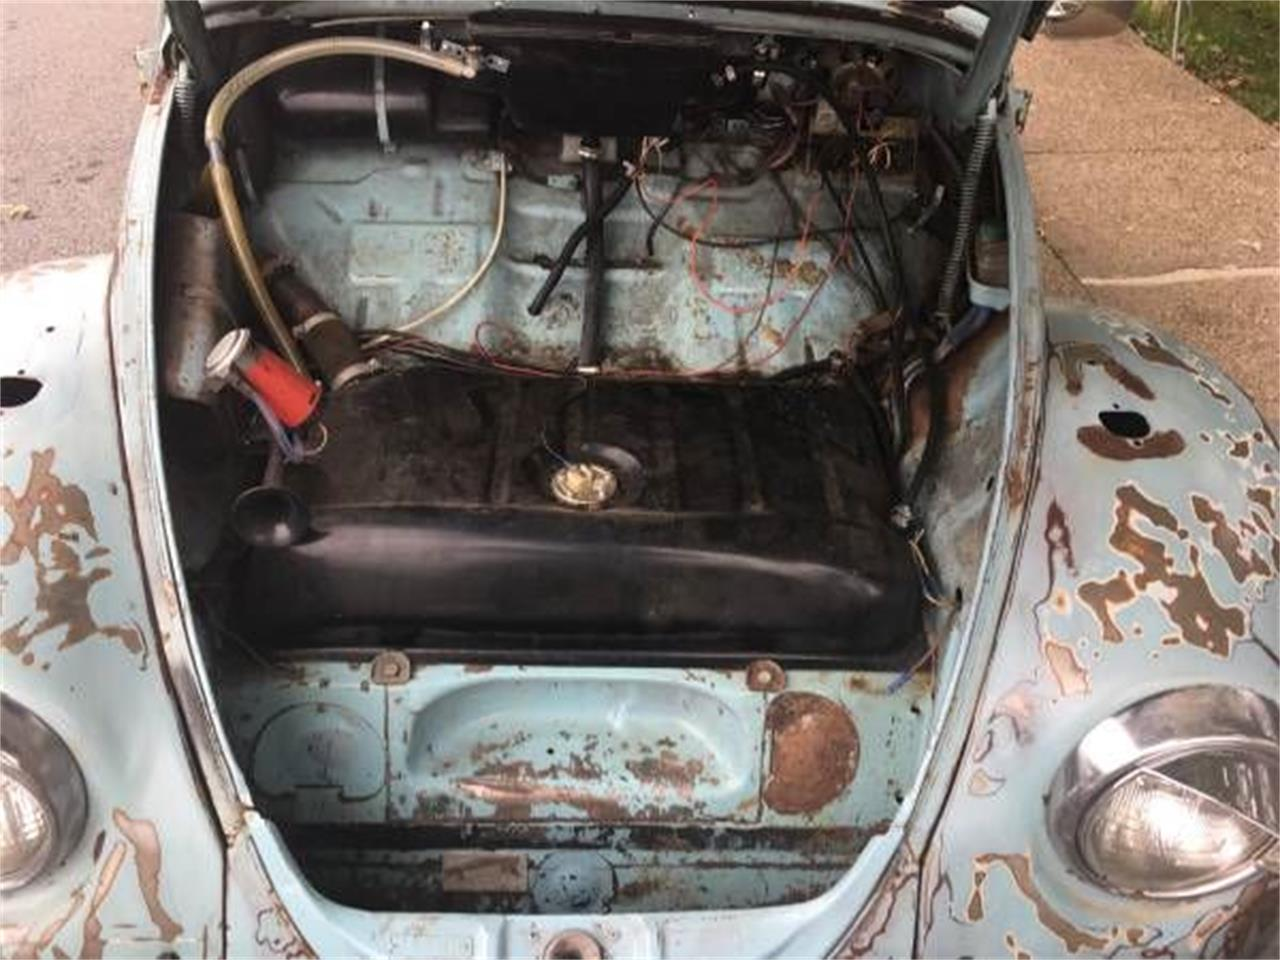 1973 Volkswagen Beetle for sale in Cadillac, MI – photo 5